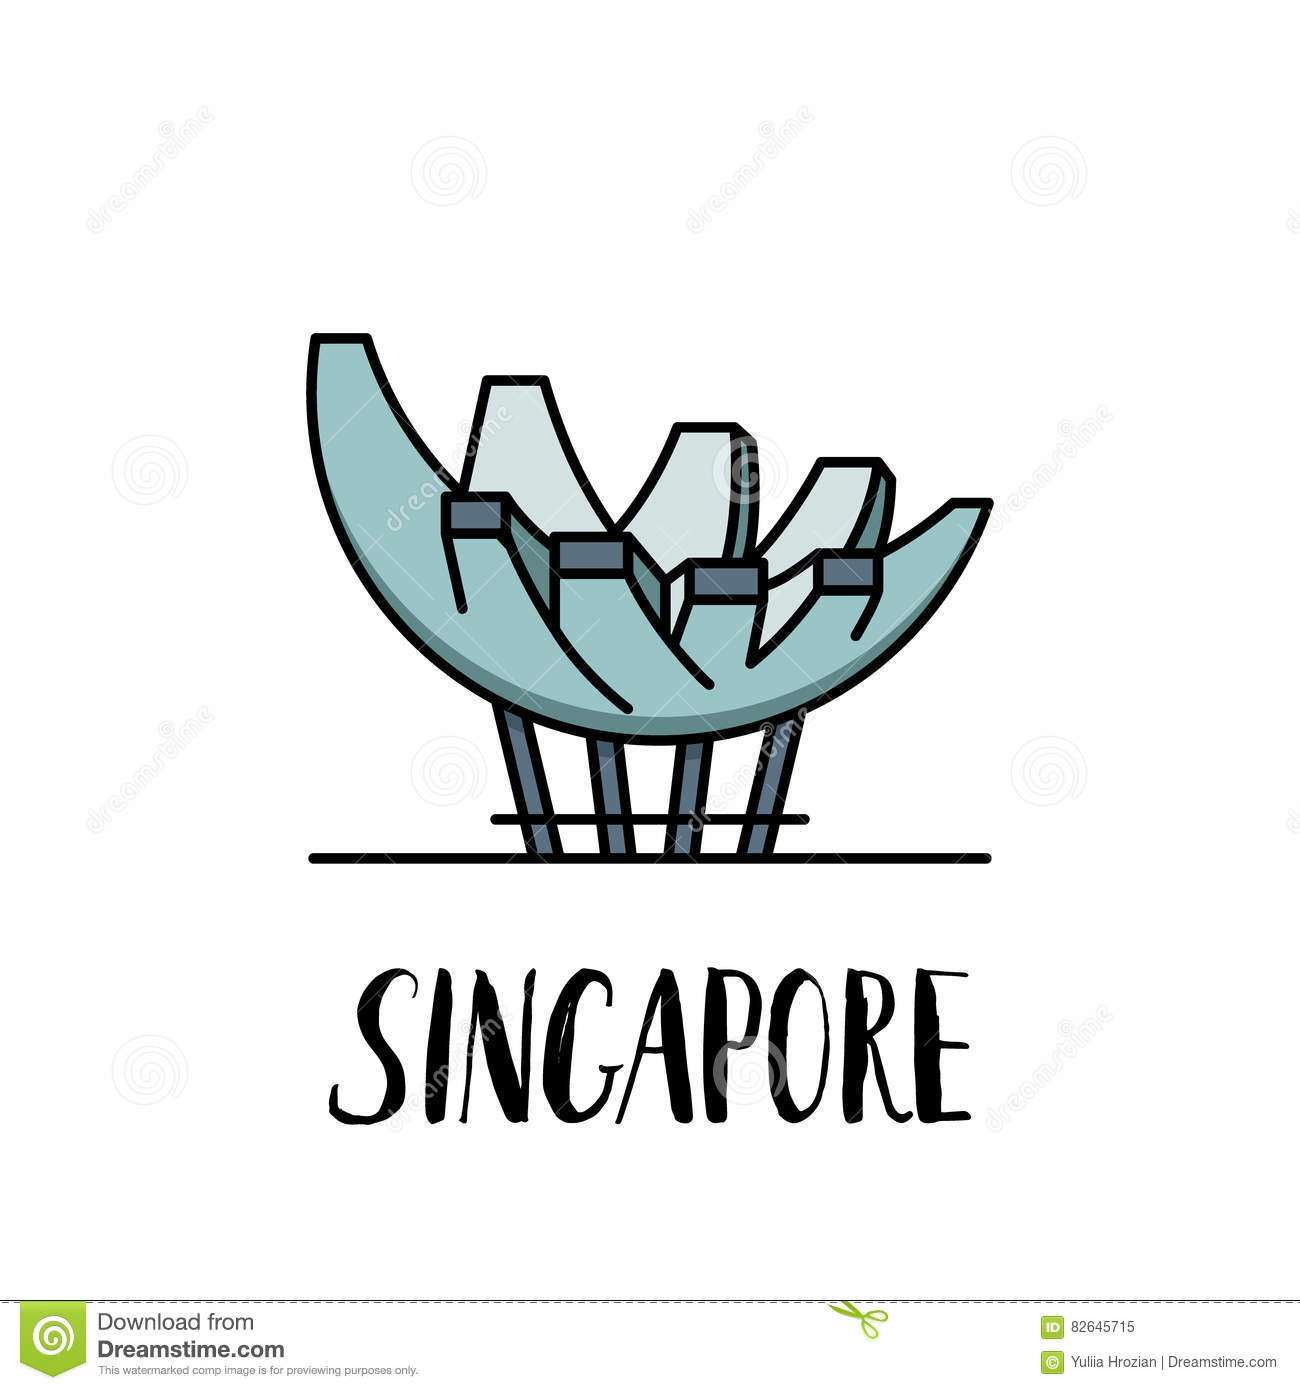 Famous singapore landmark lotus by the sea with modern